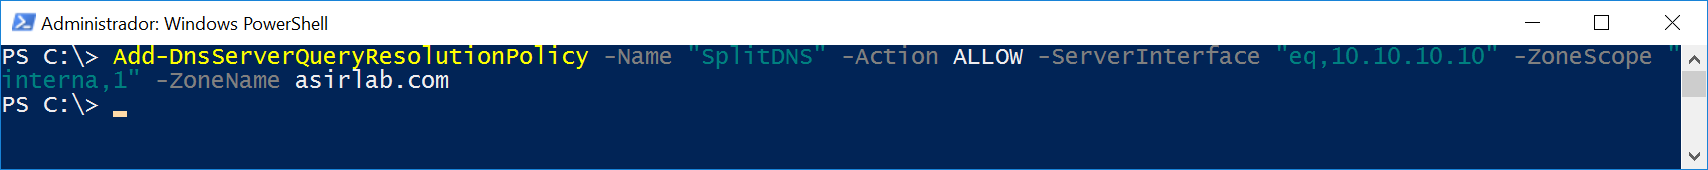 split-brain_dns_deployment_using_windows_dns_policies_07